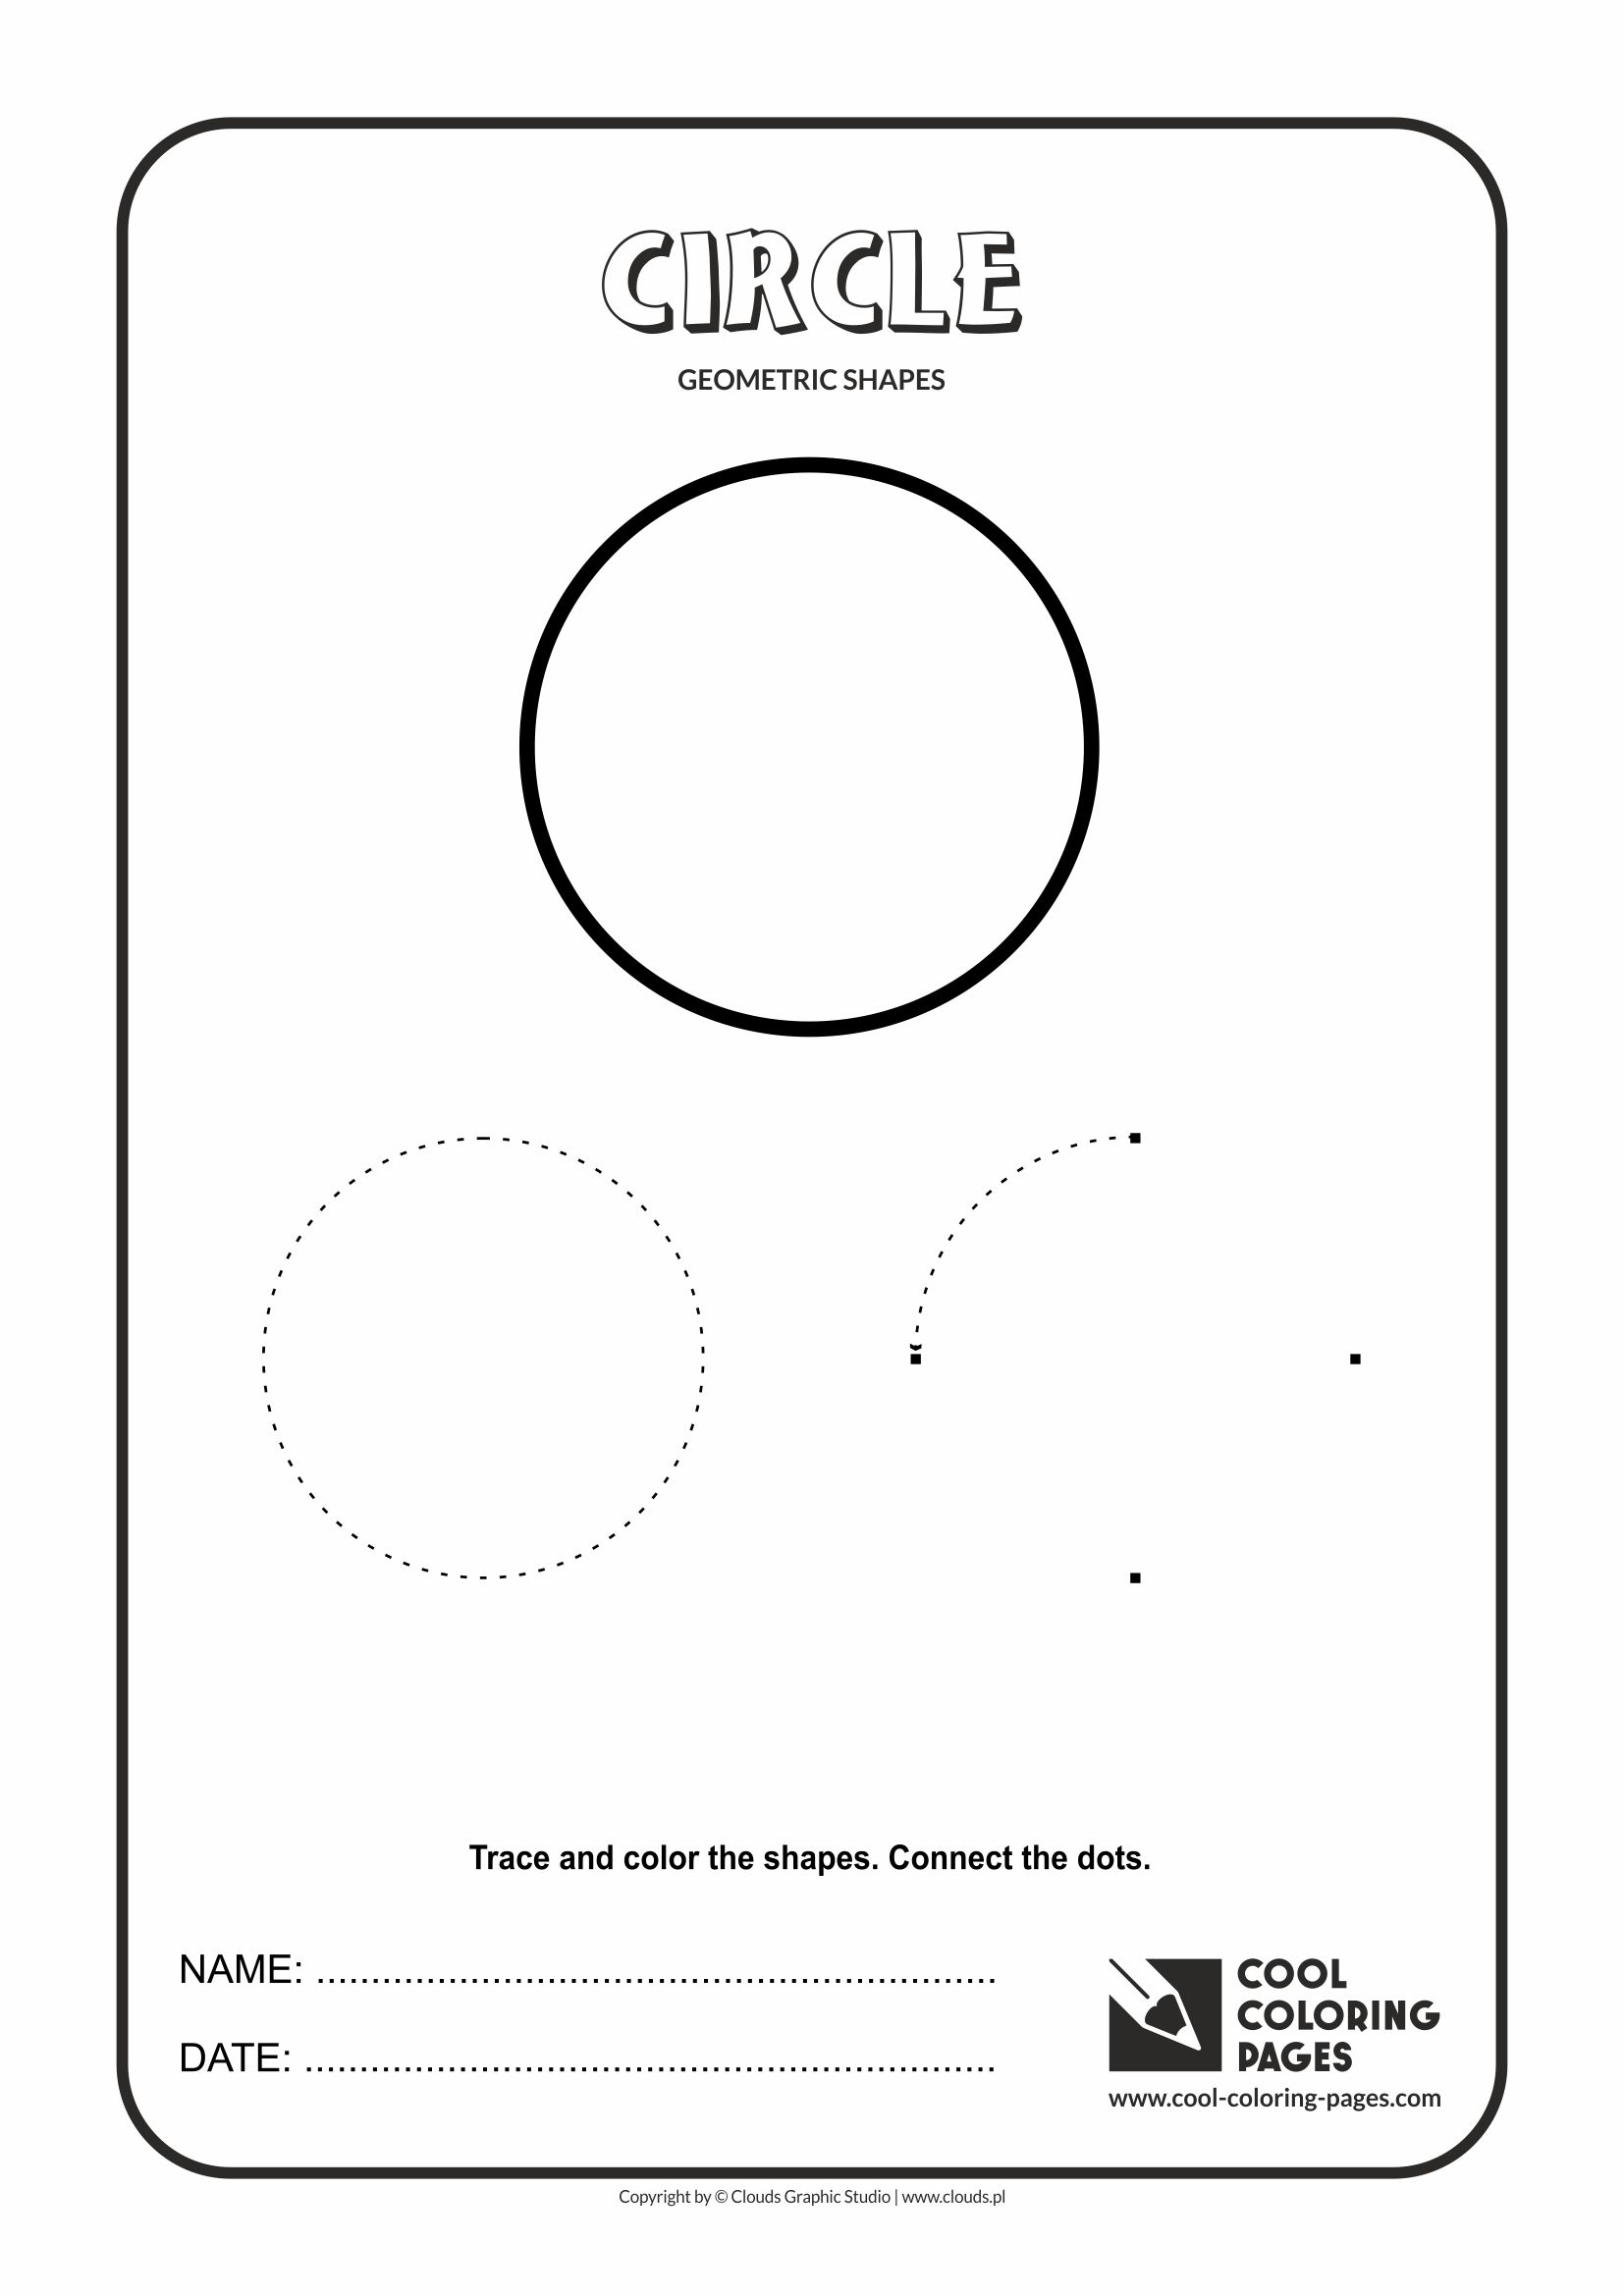 Cool Coloring Pages - Geometric shapes / Circle